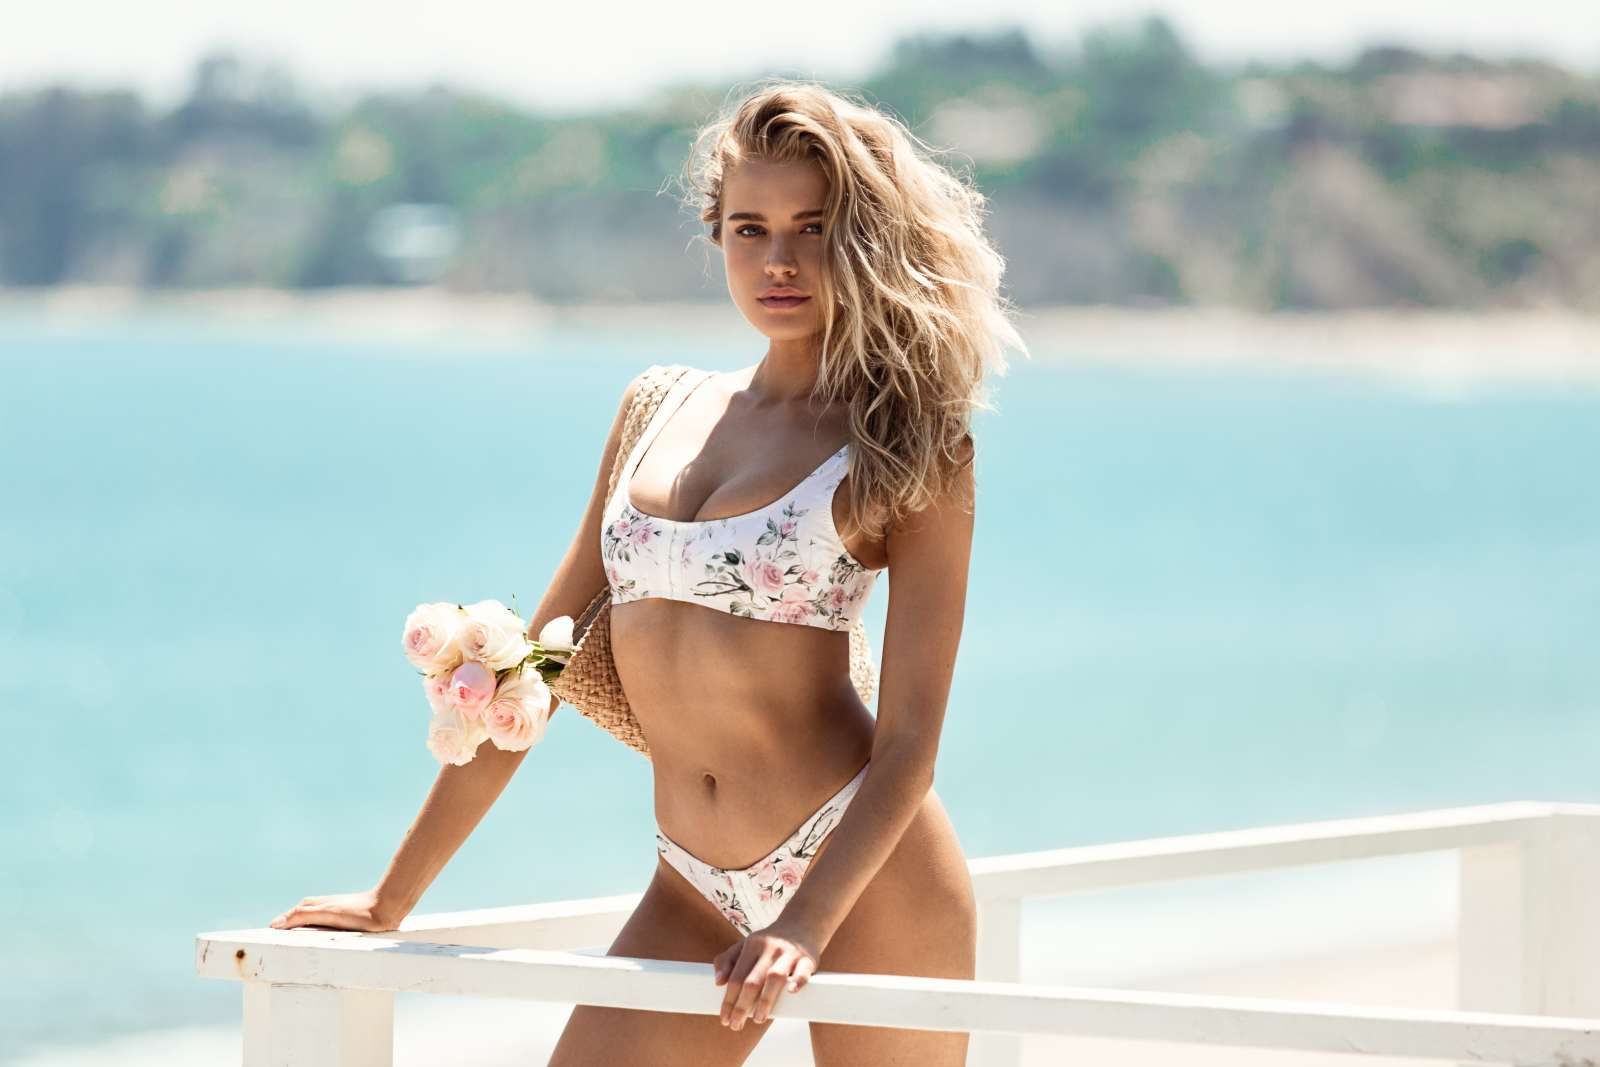 Tanya Mityushina photo 117 of 120 pics, wallpaper